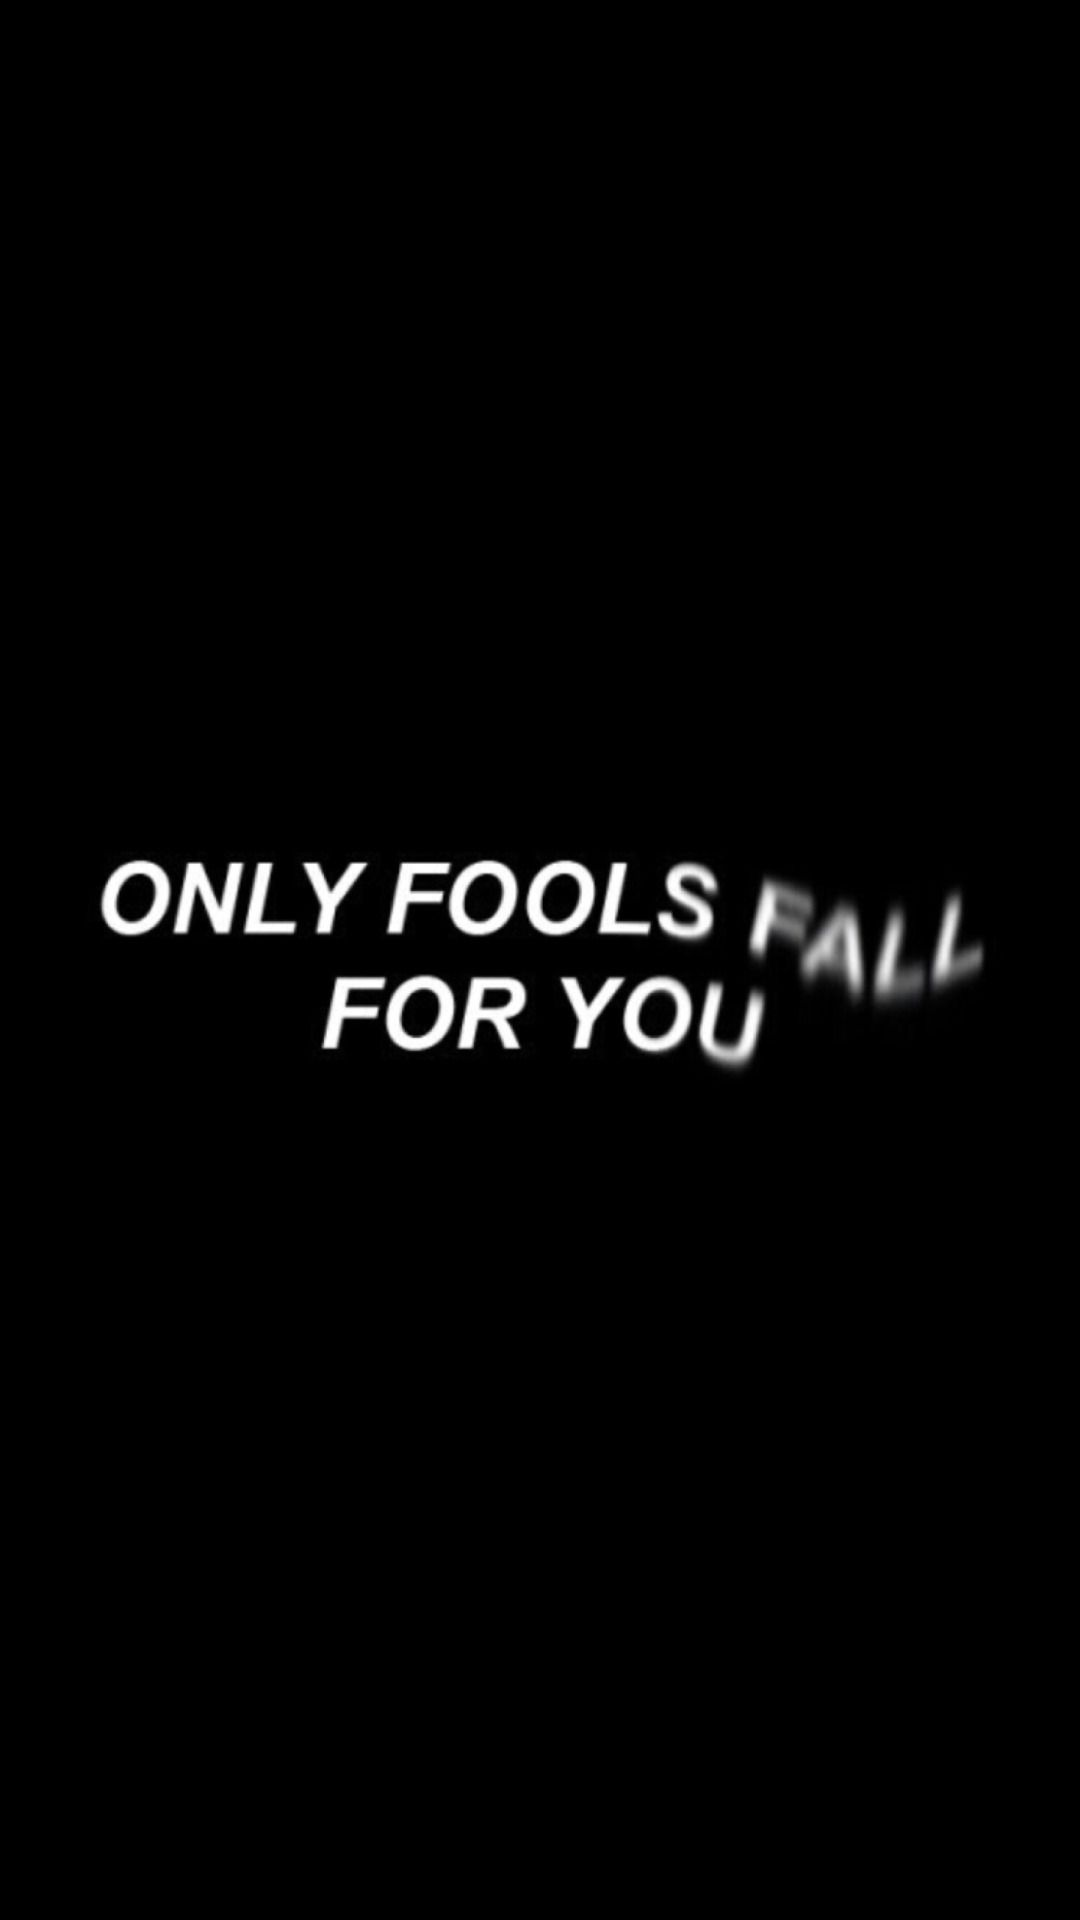 Only Fools Black Aesthetic Black And White Aesthetic Words